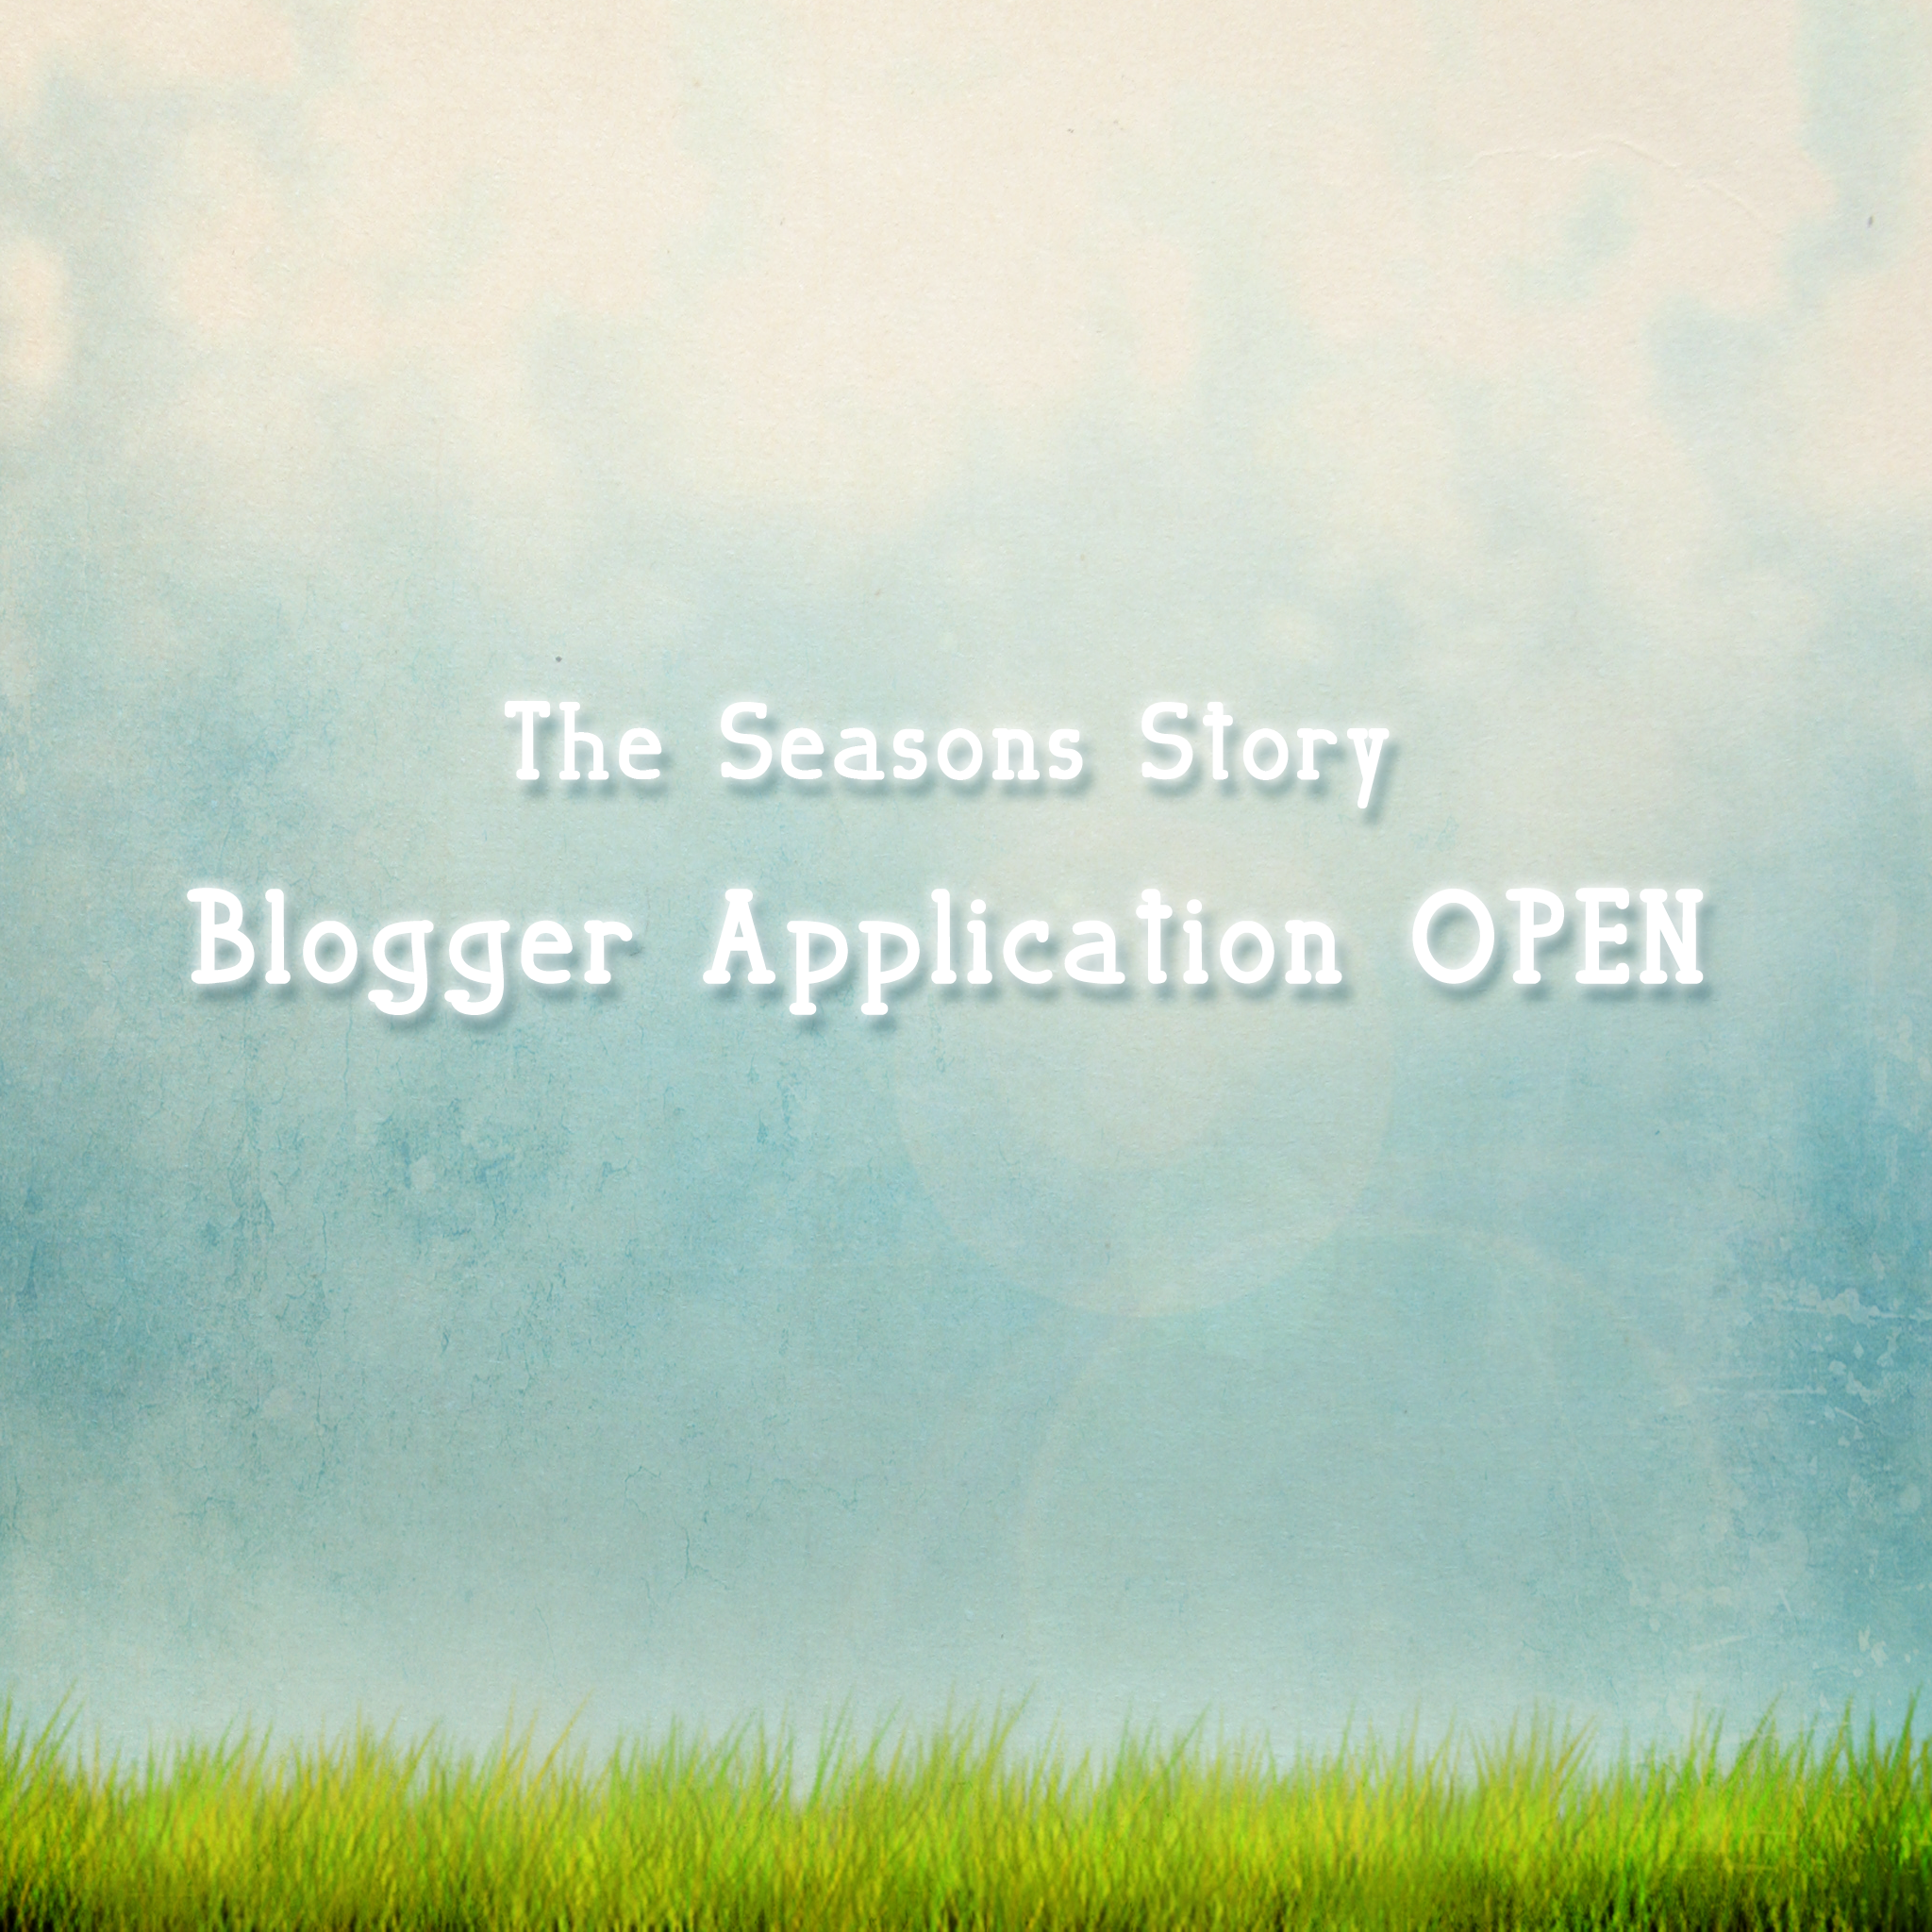 Blogger-Application-OPEN.png